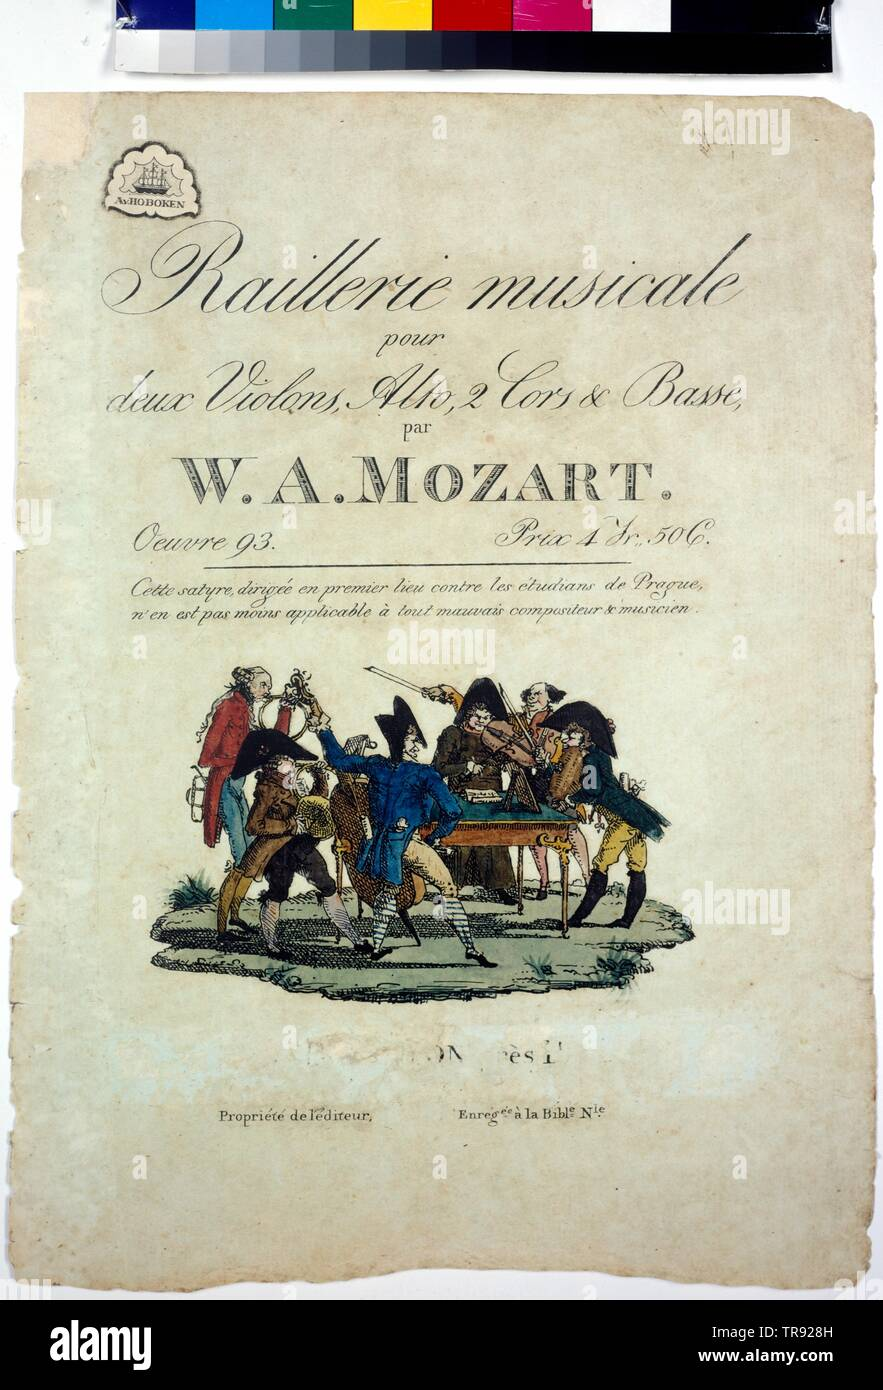 "title page ""Rallerie musicale pour deux Violons, Alto 2 Cors & Basse"", title page ""Rallerie musicale pour deux Violons, Alto 2 Cors & Basse"" by Wolfgang Amadeus Mozart. circa 1803, Additional-Rights-Clearance-Info-Not-Available Stock Photo"